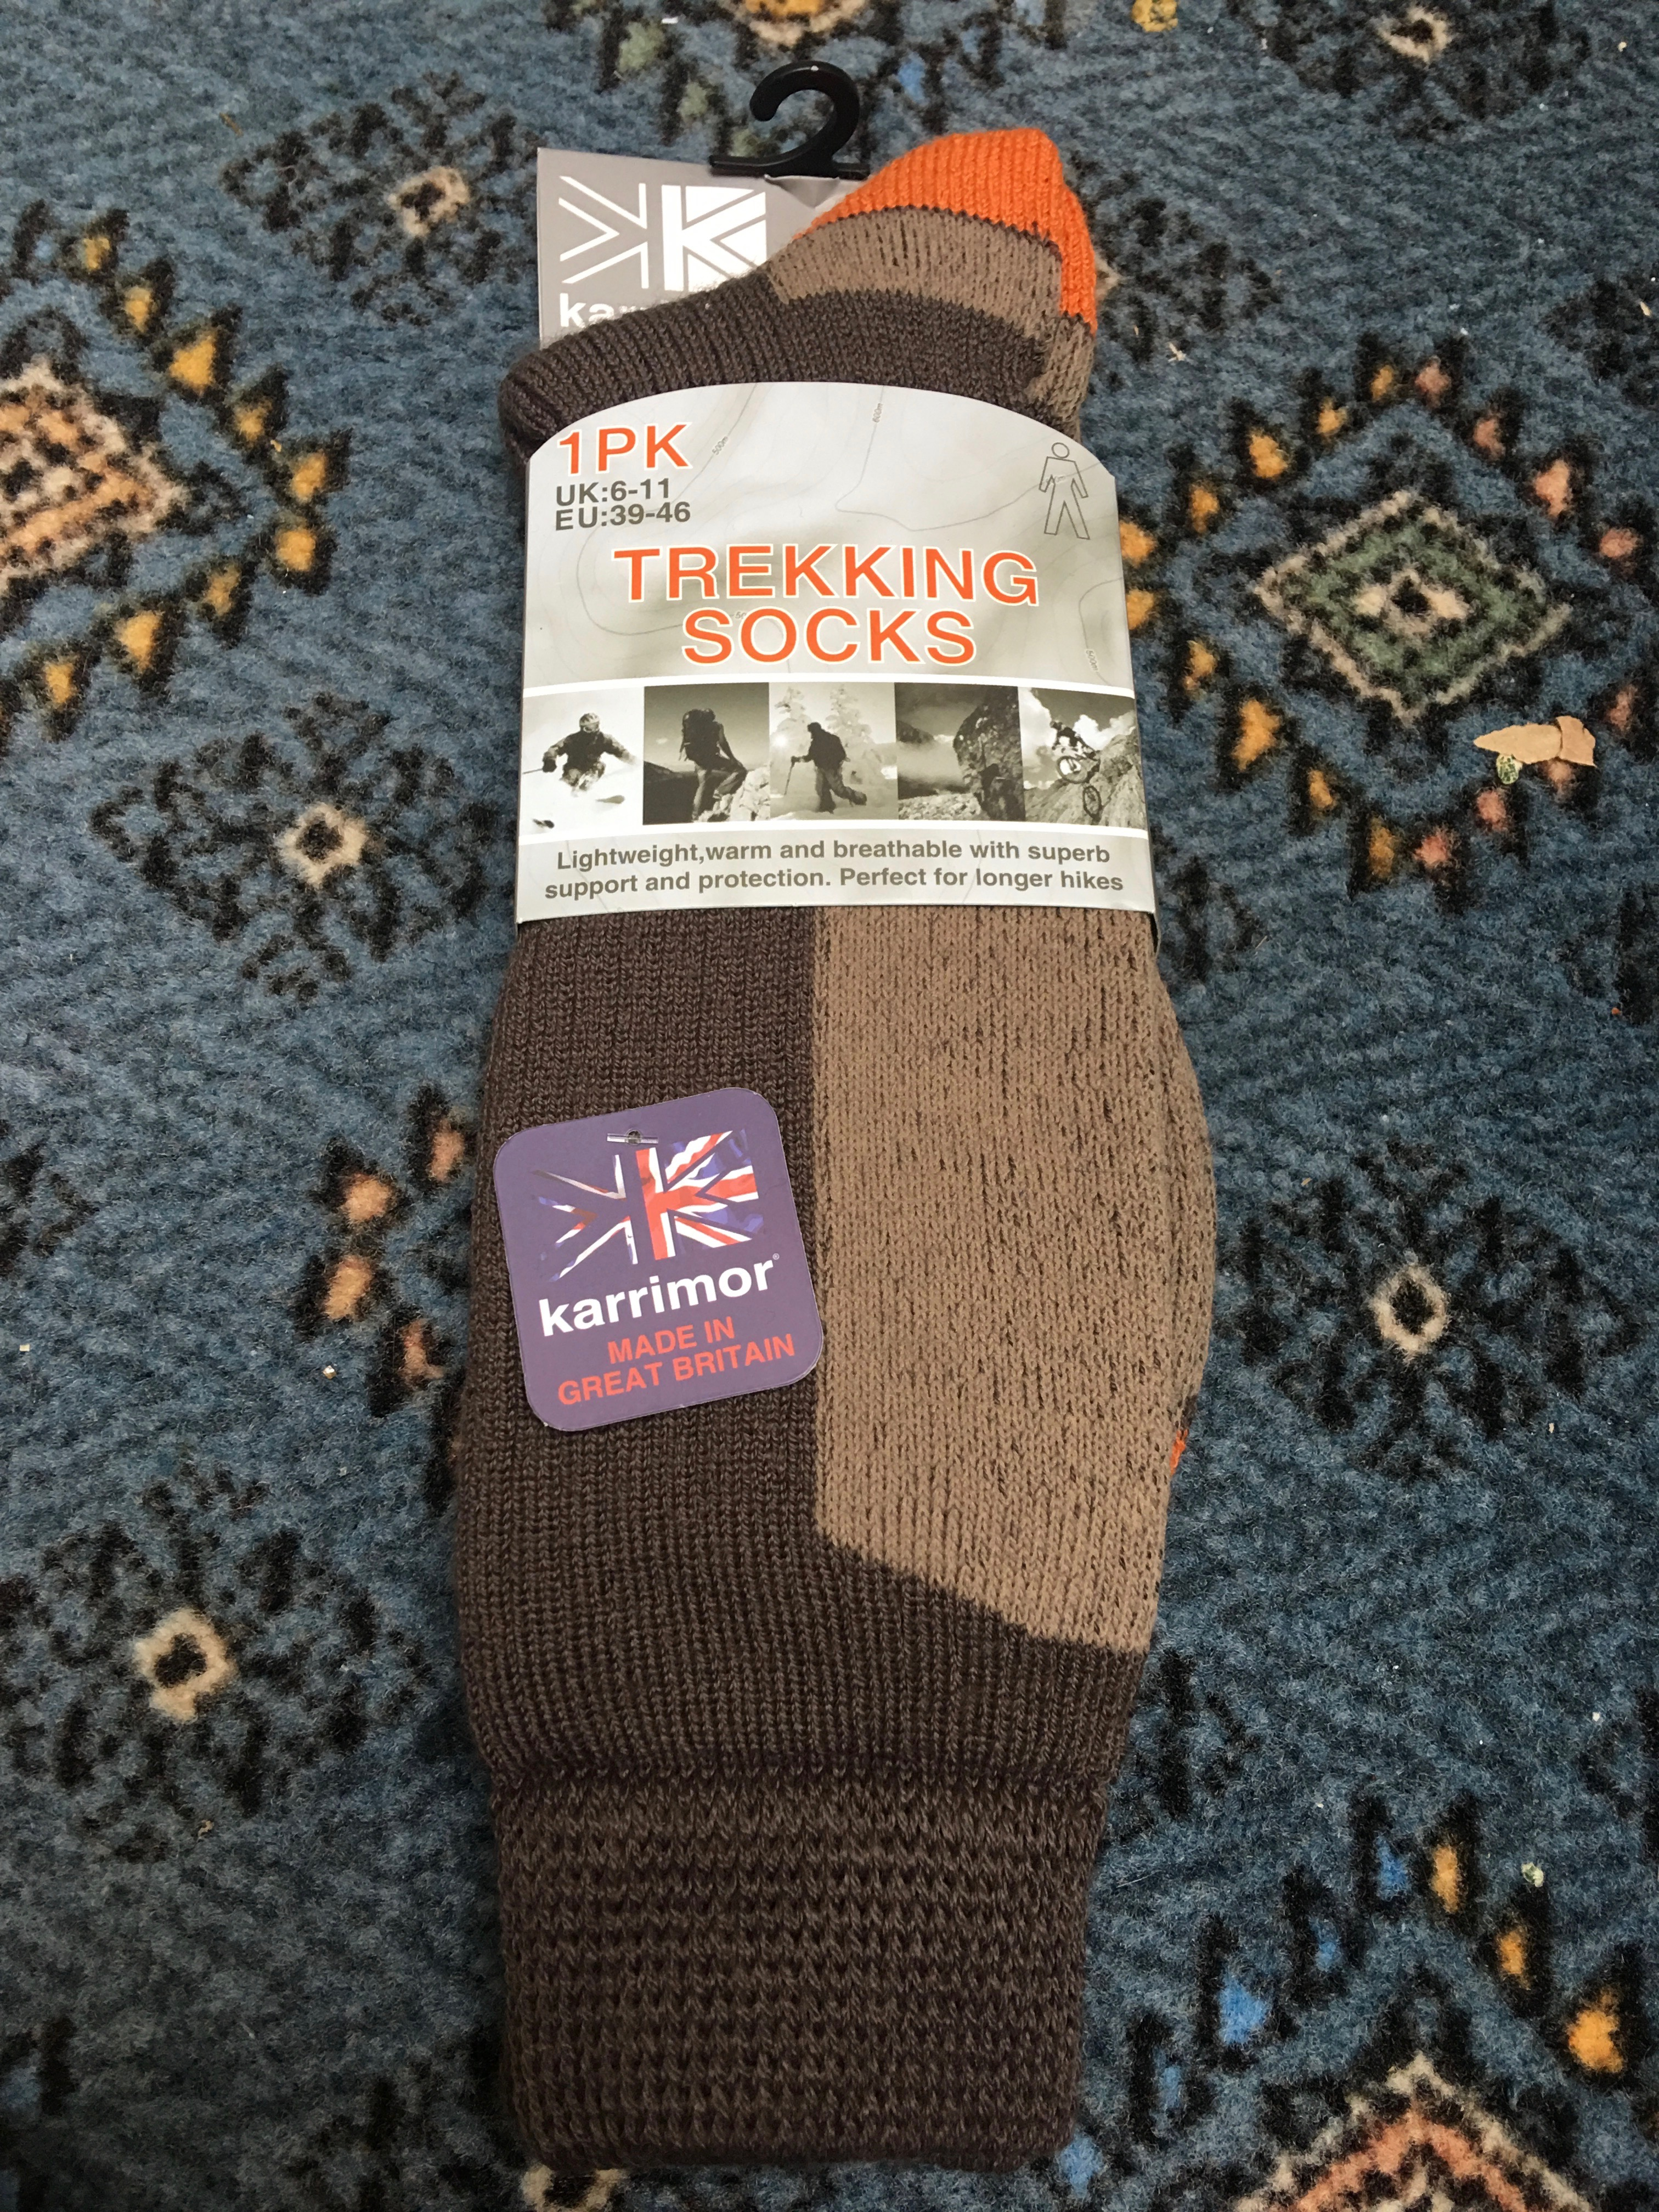 2cd826f441813 Karrimor men's 6-11 Trekking Socks. Made in Great Britain. Photograph by  author